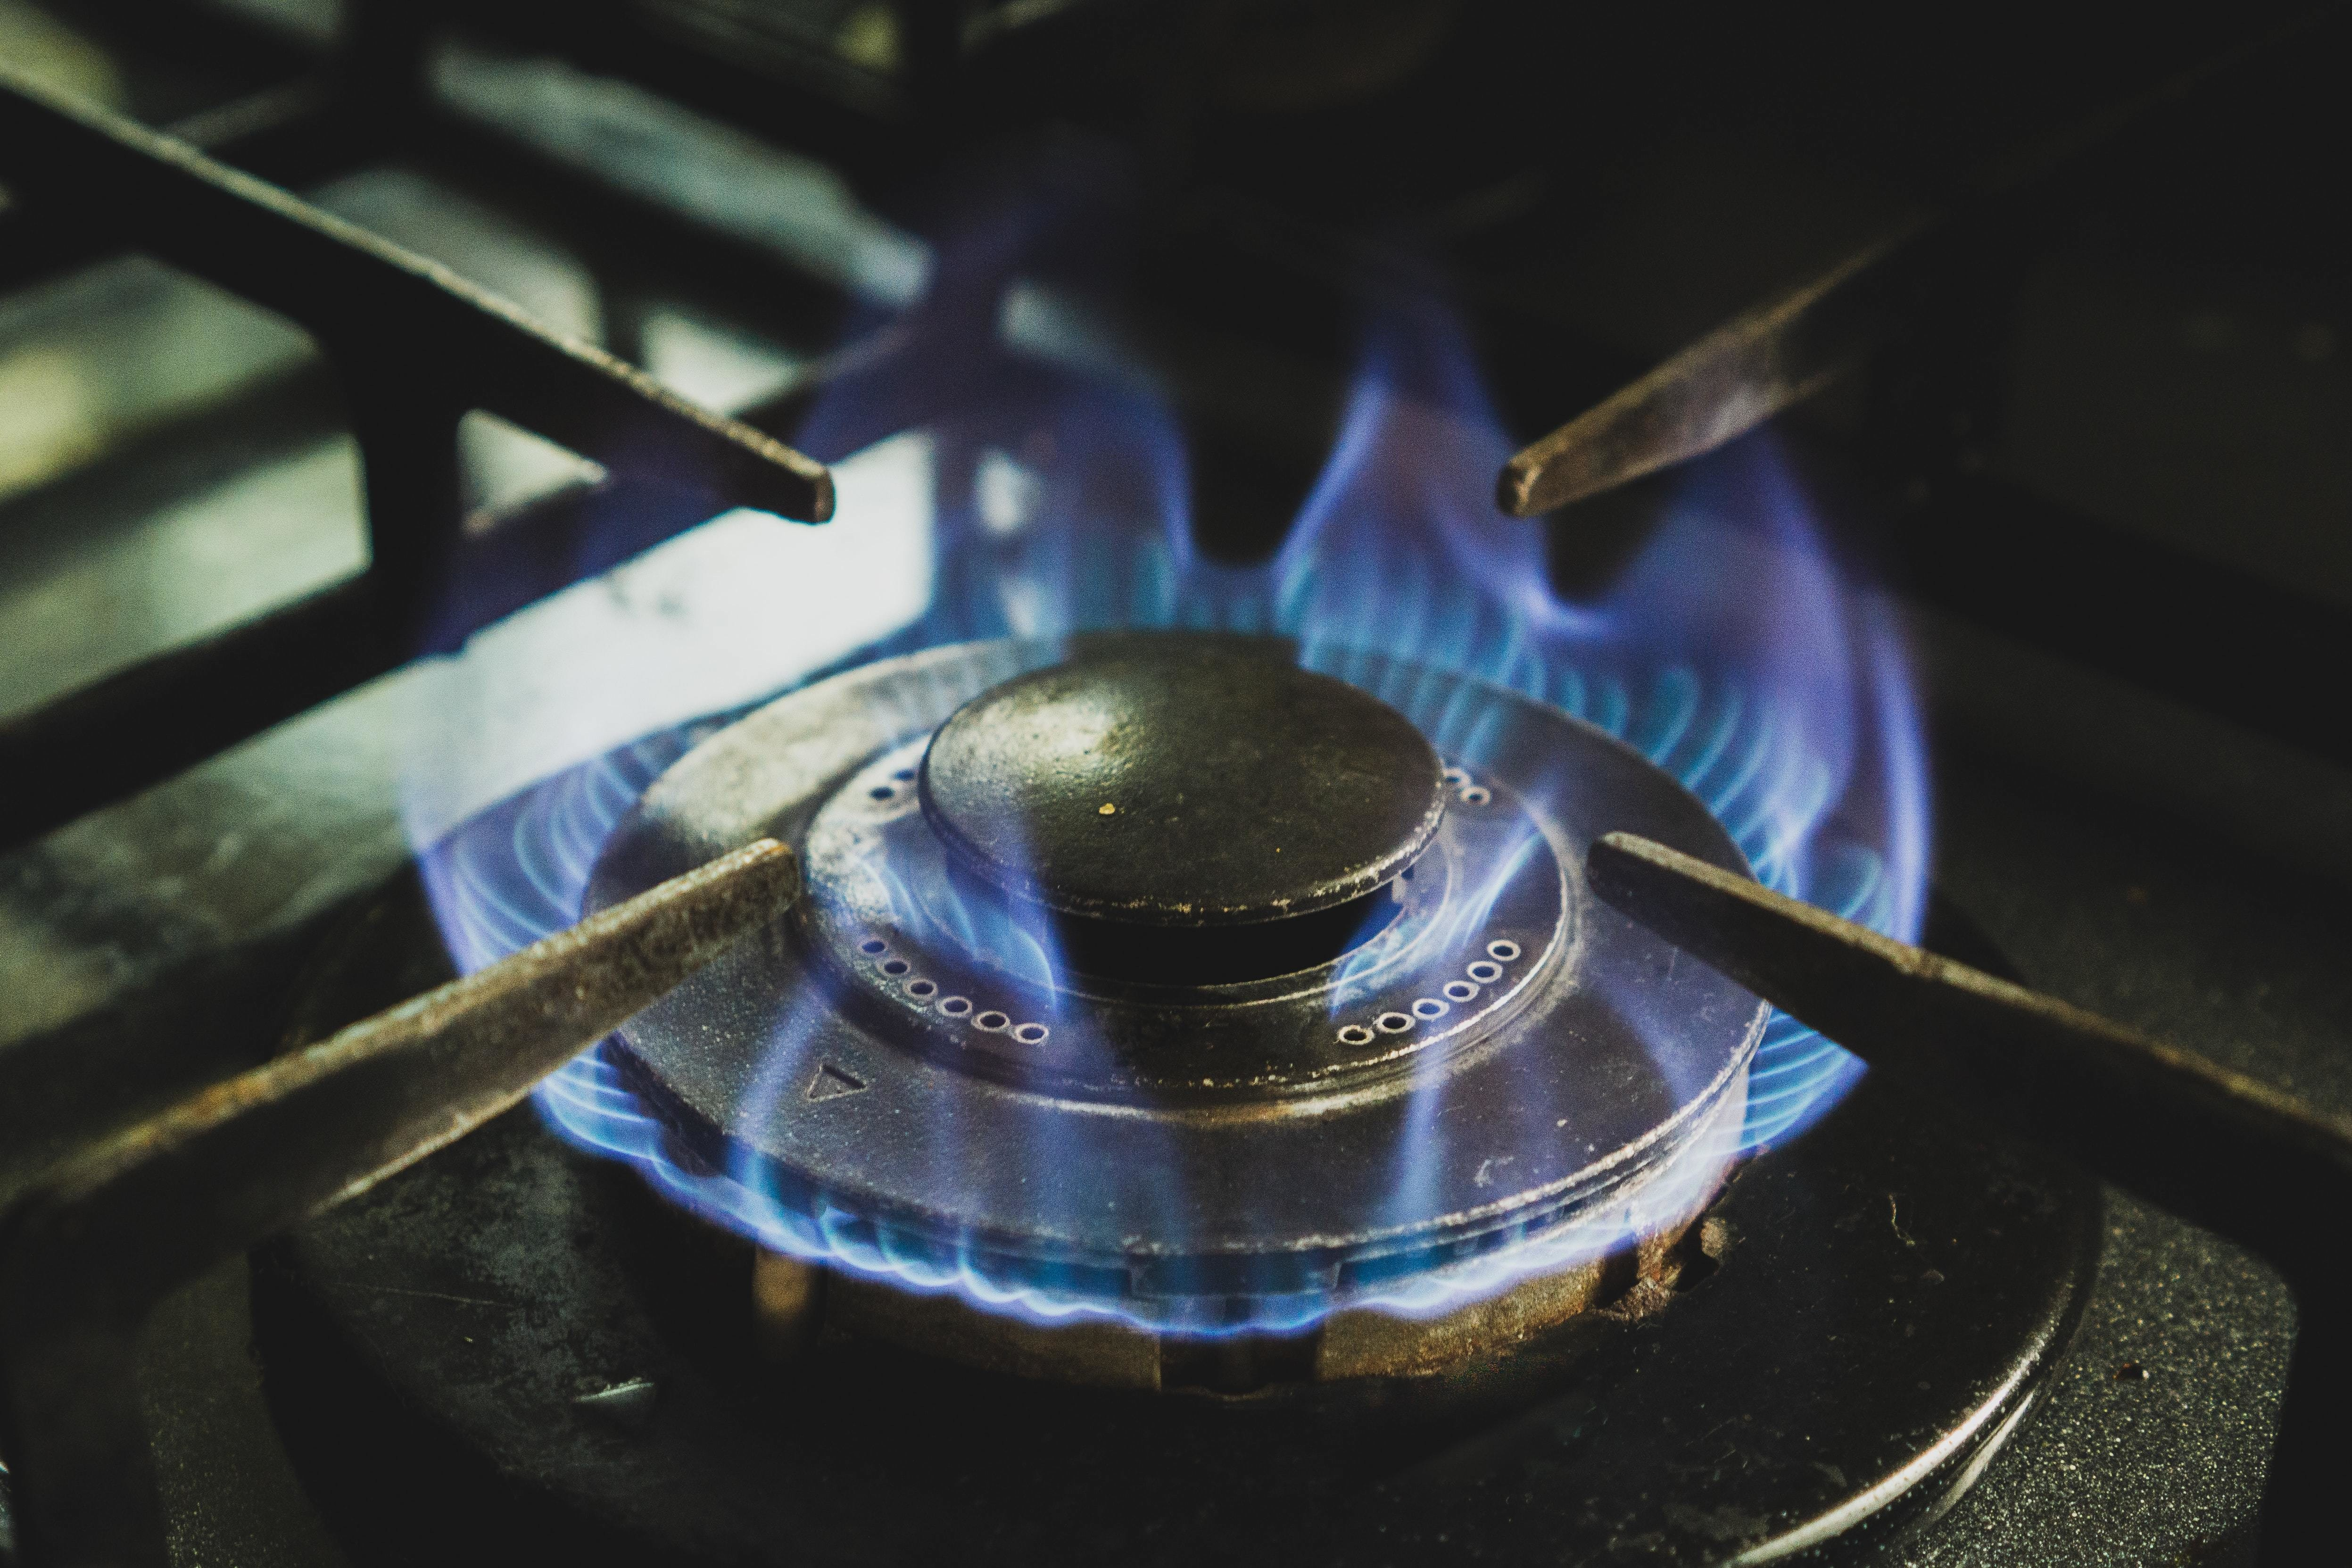 An old gas stove on fire.